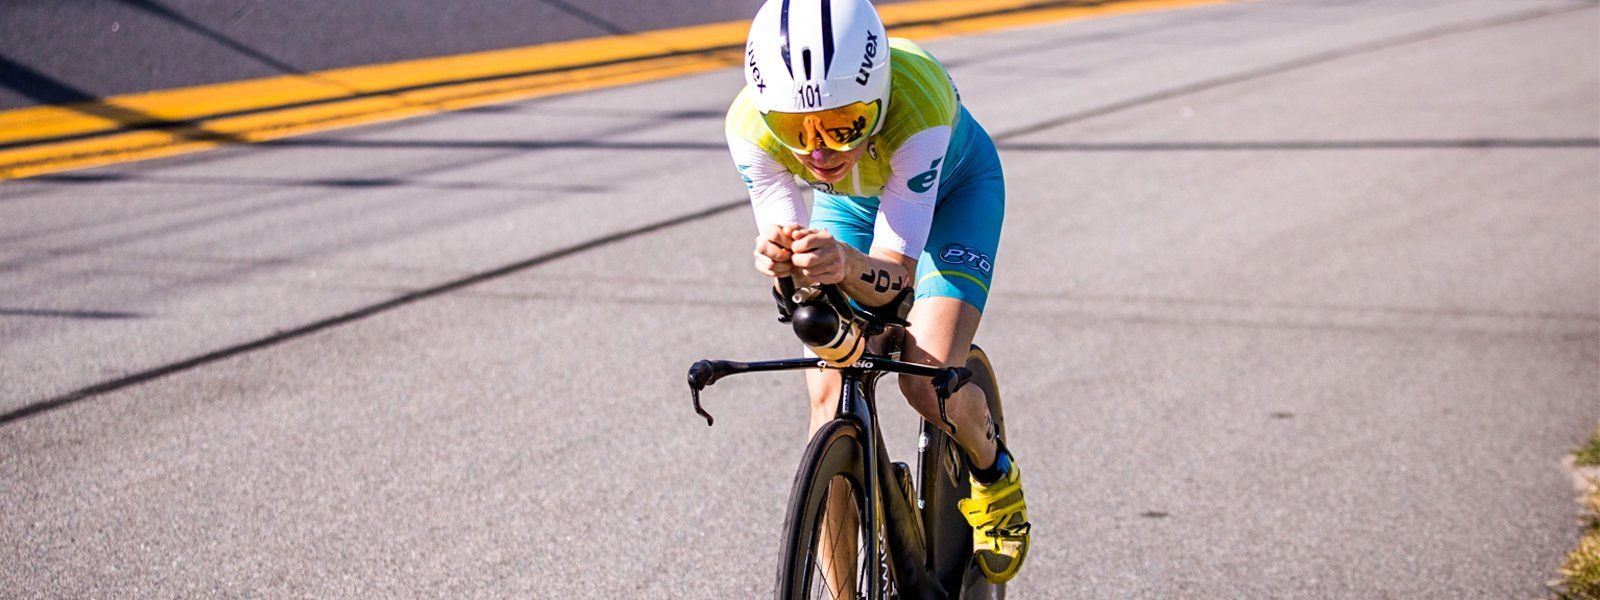 Redemption: Anne Haug's remarkable recovery to finish on Daytona podium